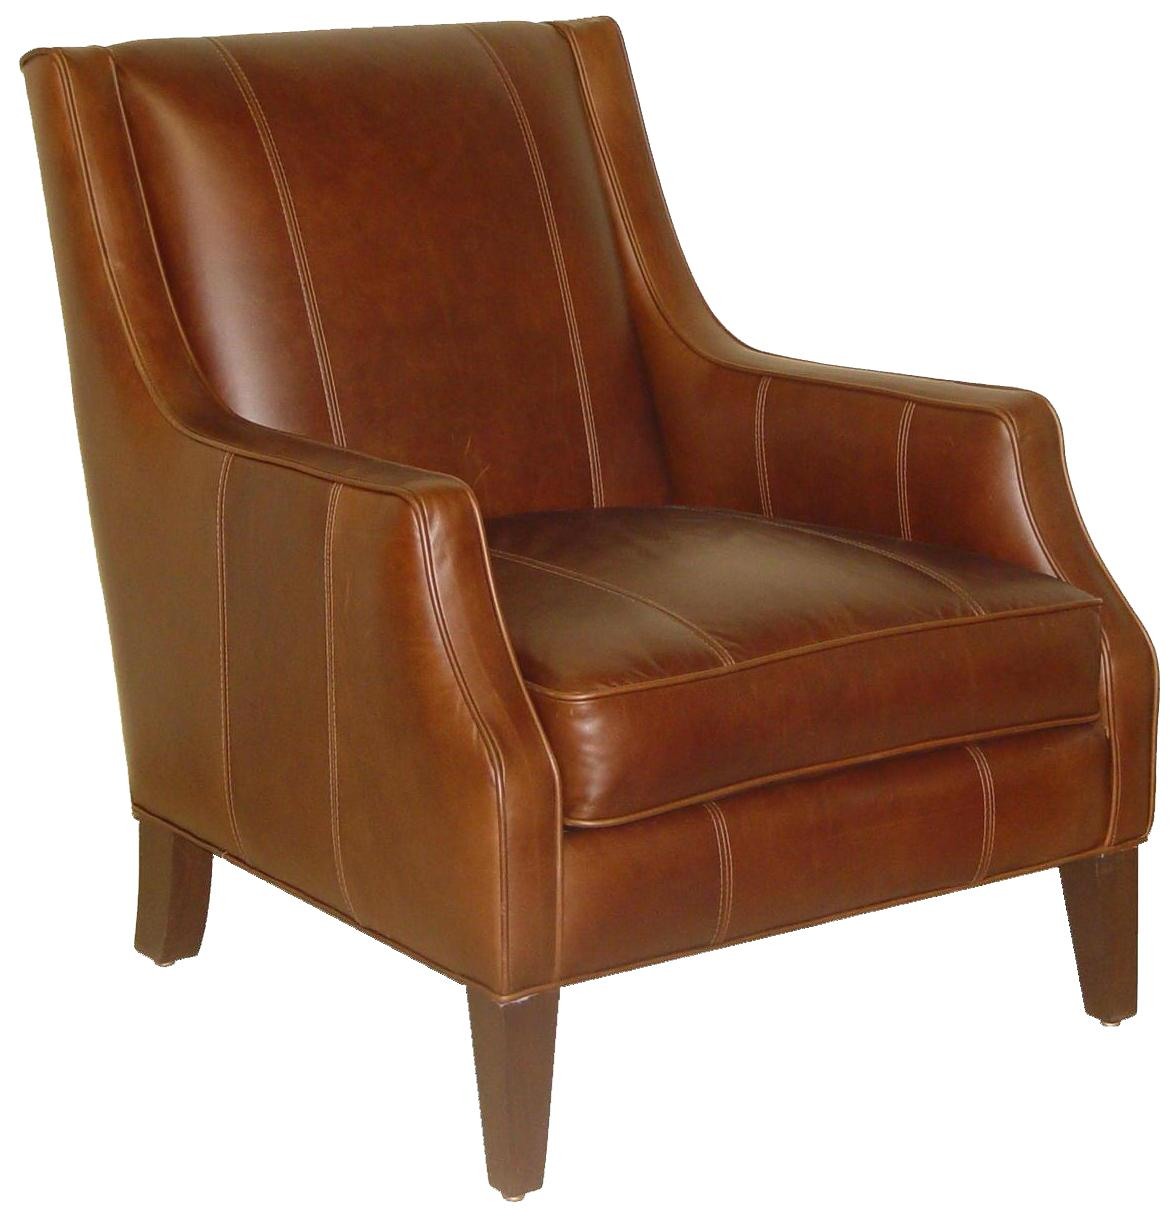 modern leather accent chairs the best office chair in world jonathan louis accentuates 85757 miles contemporary